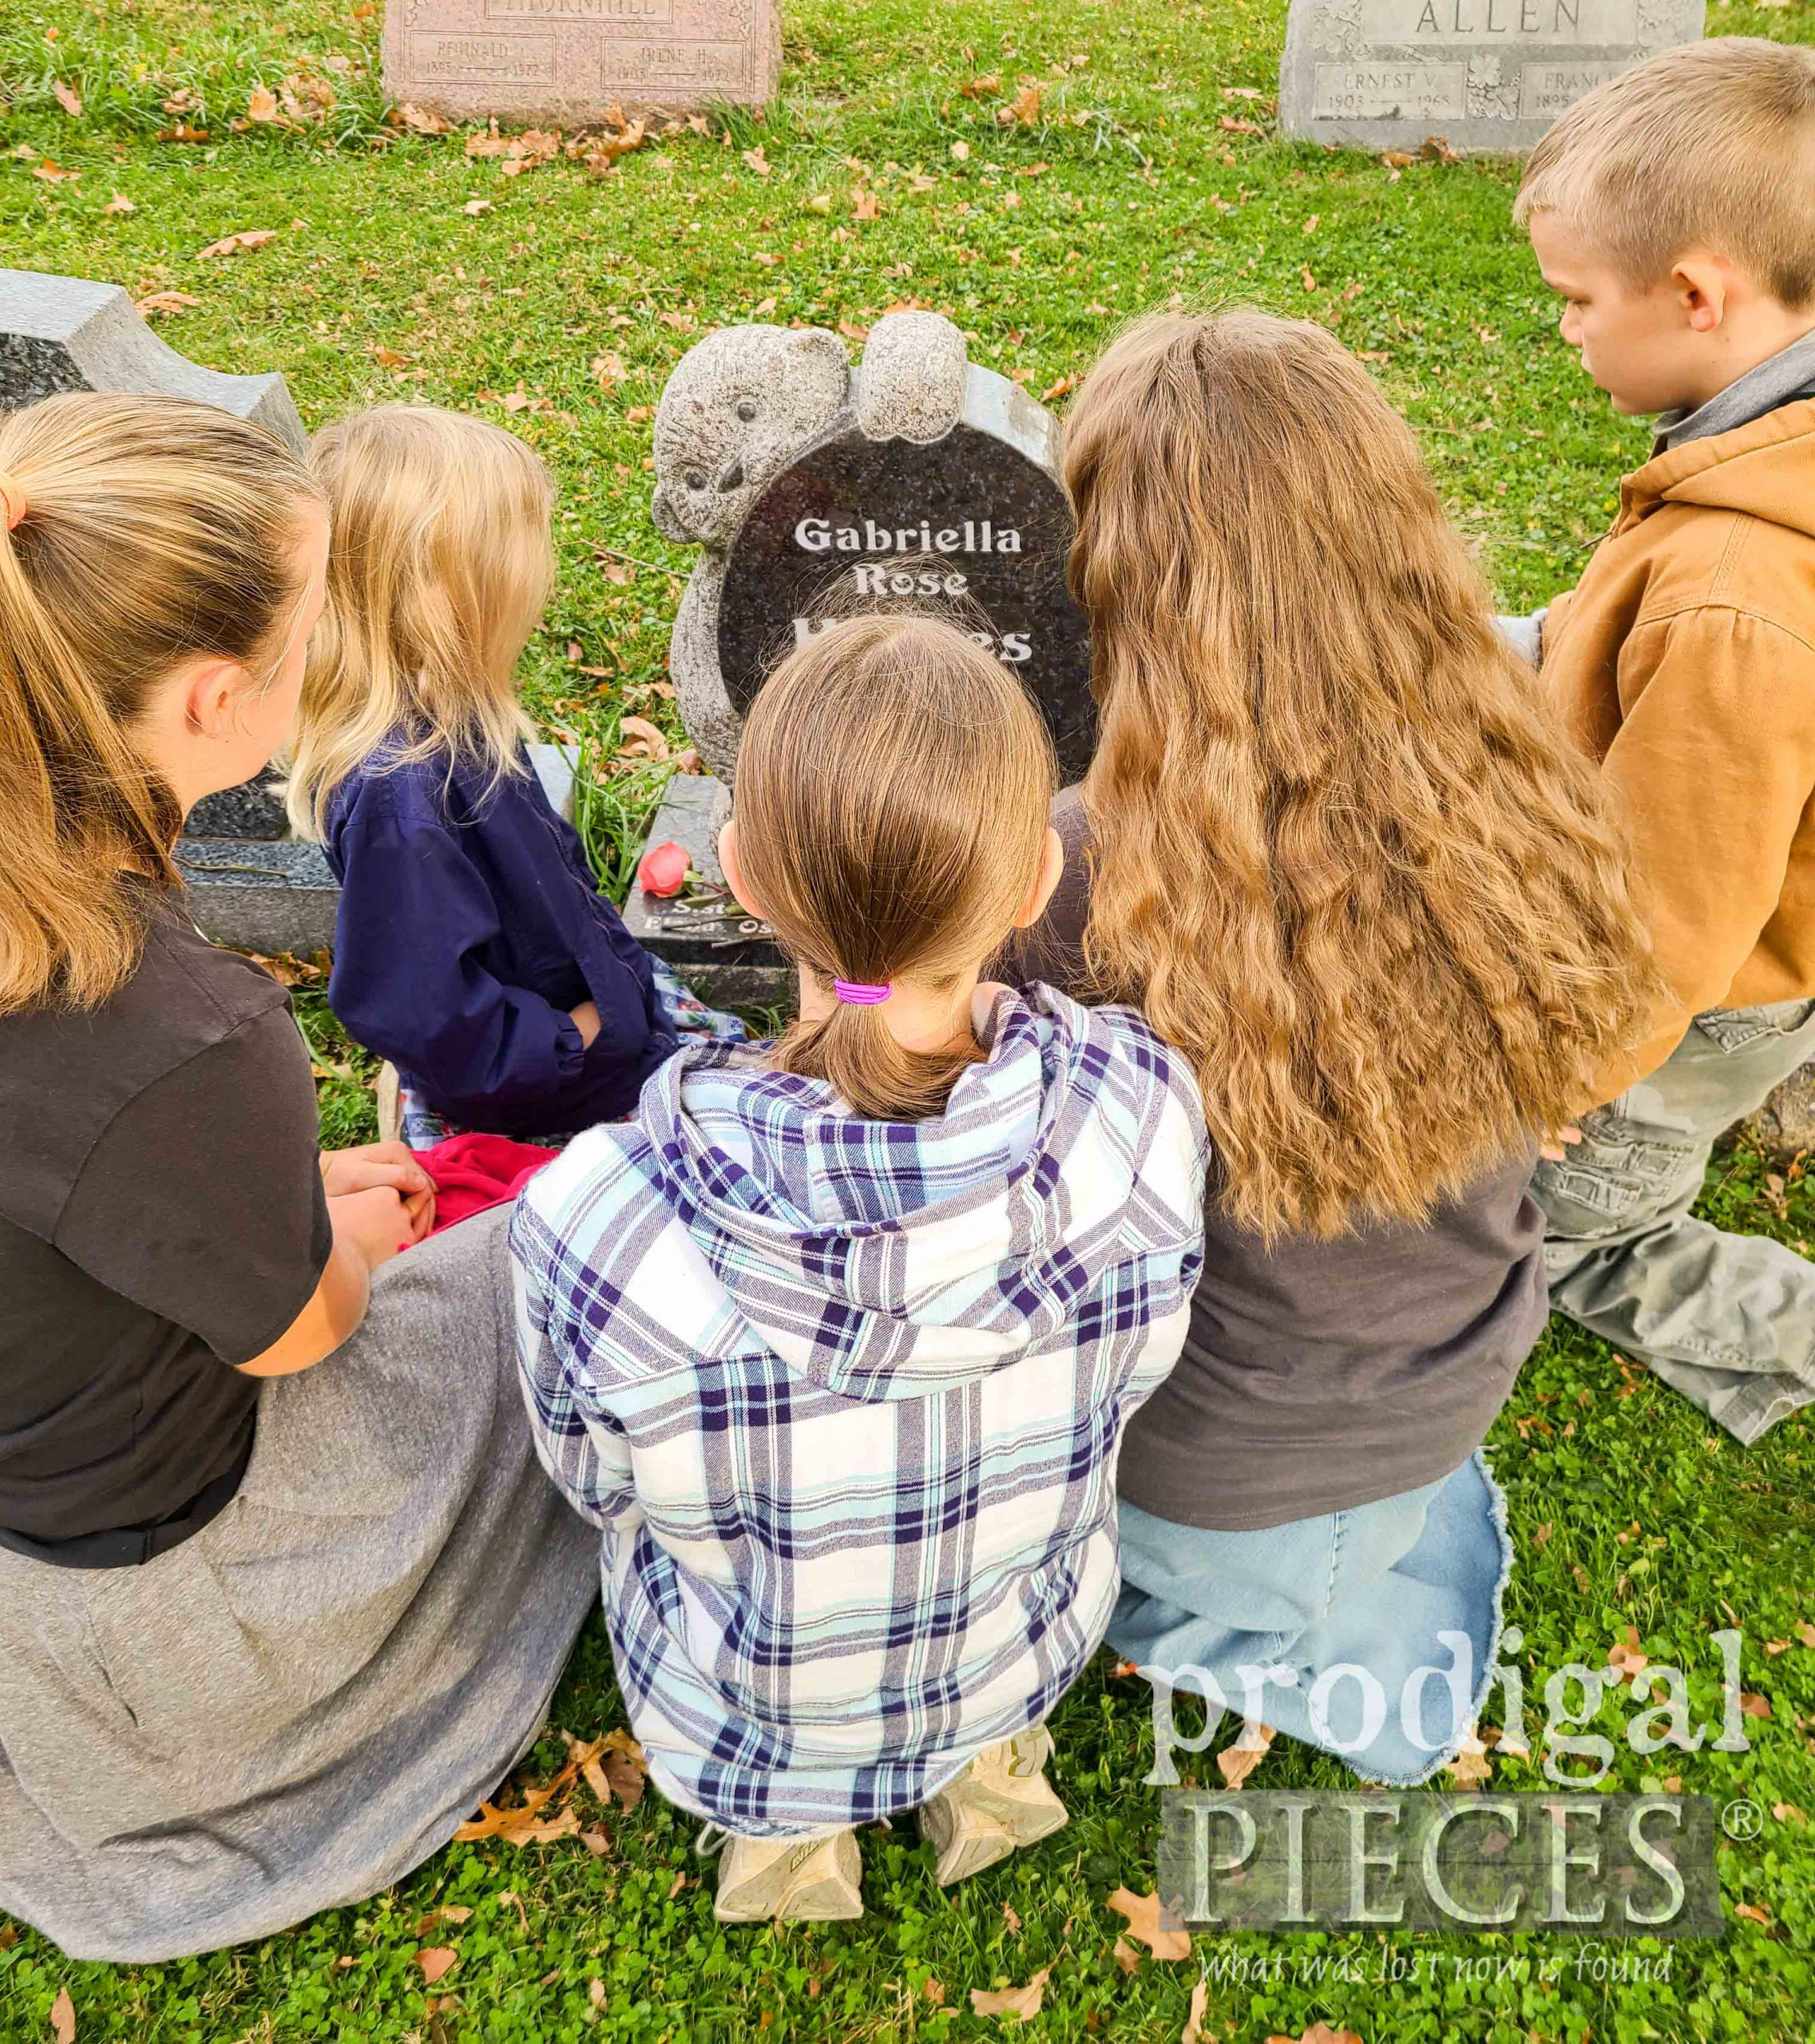 Prodigal Pieces Kids Graveside | prodigalpieces.com